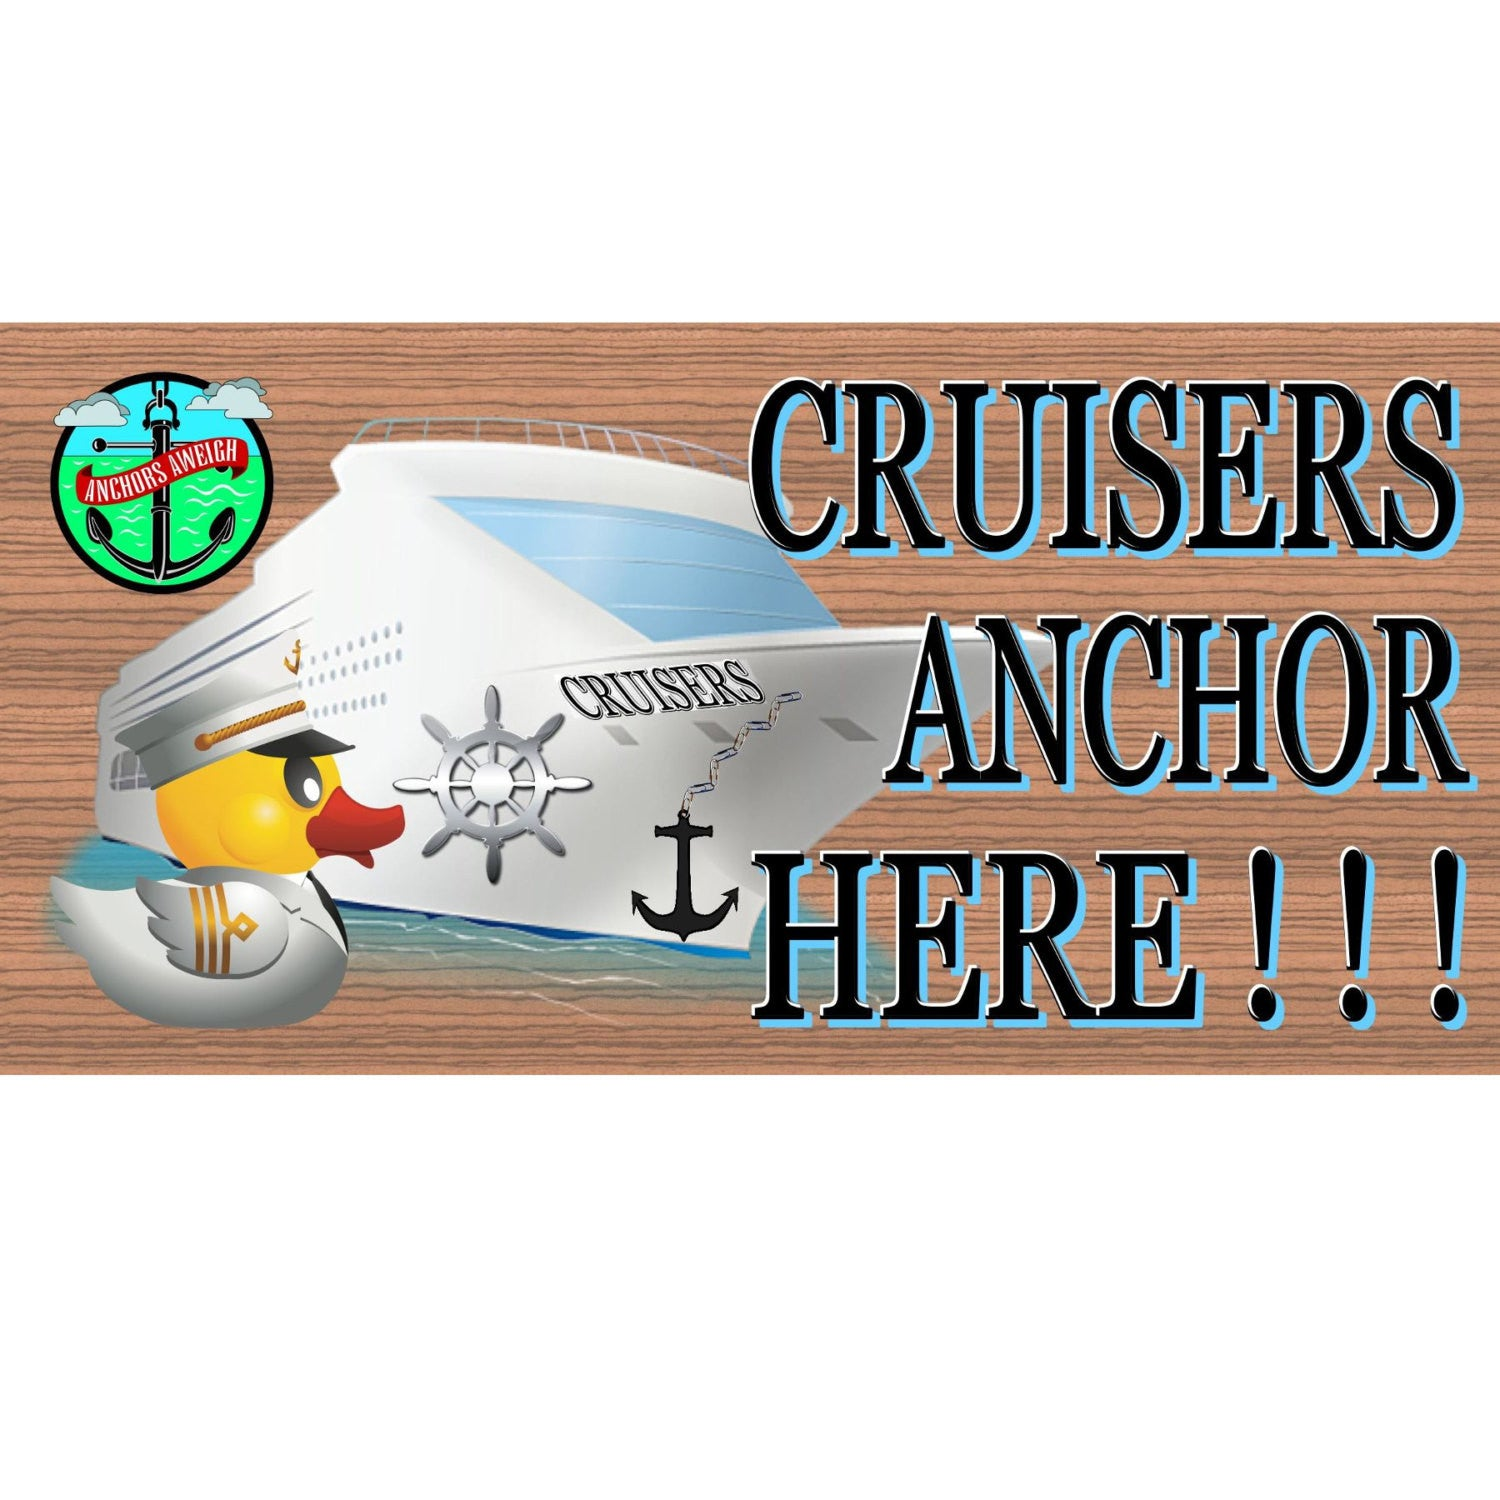 Cruise Wood Signs - Cruisers Anchor - GS 889 - Nautical Plaque